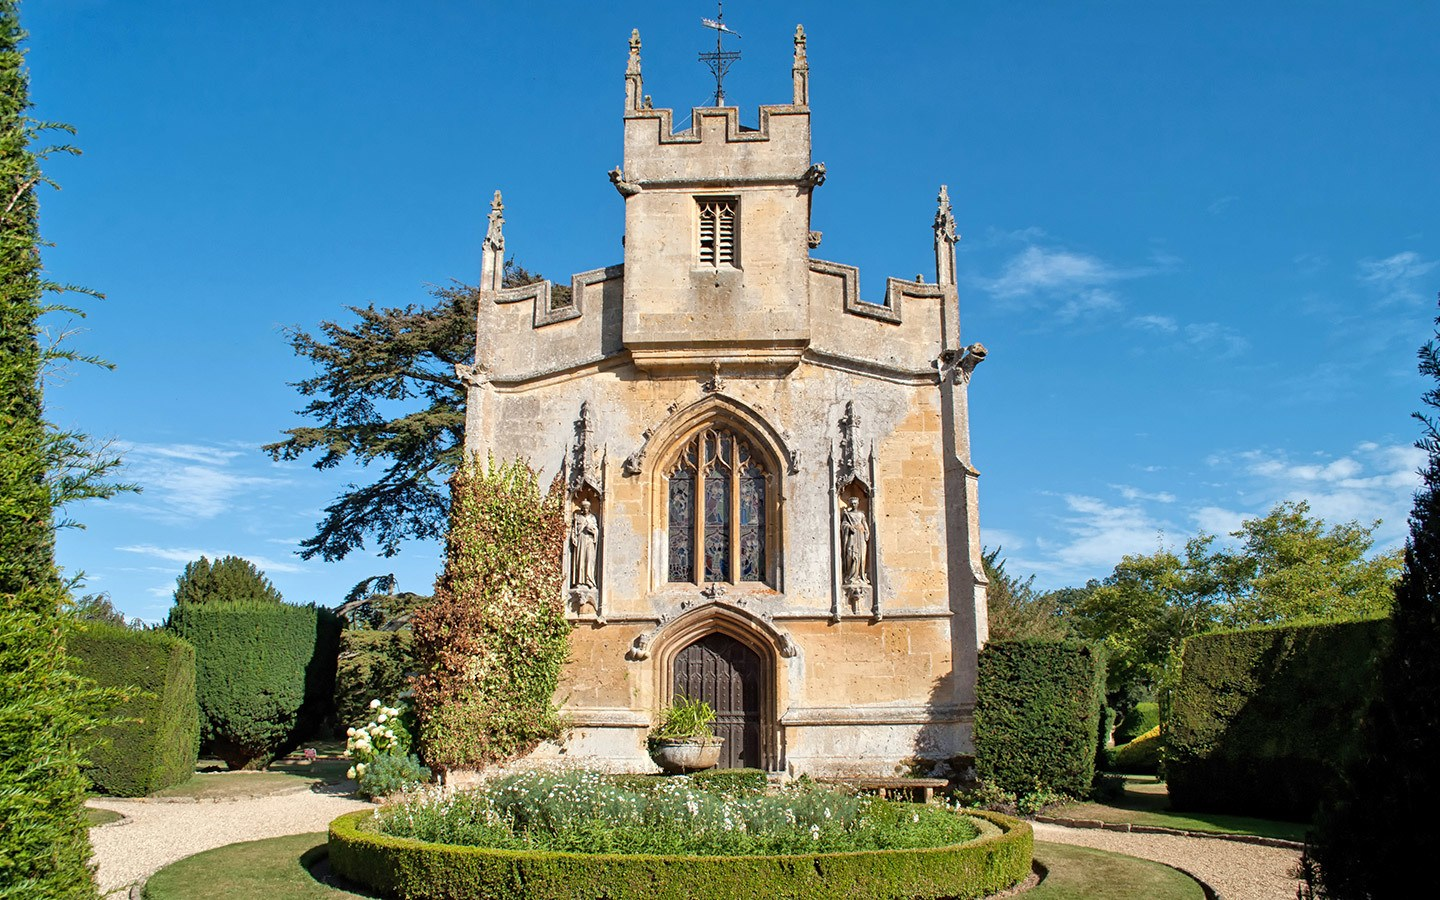 St Mary's Church at Sudeley Castle in the Cotswolds